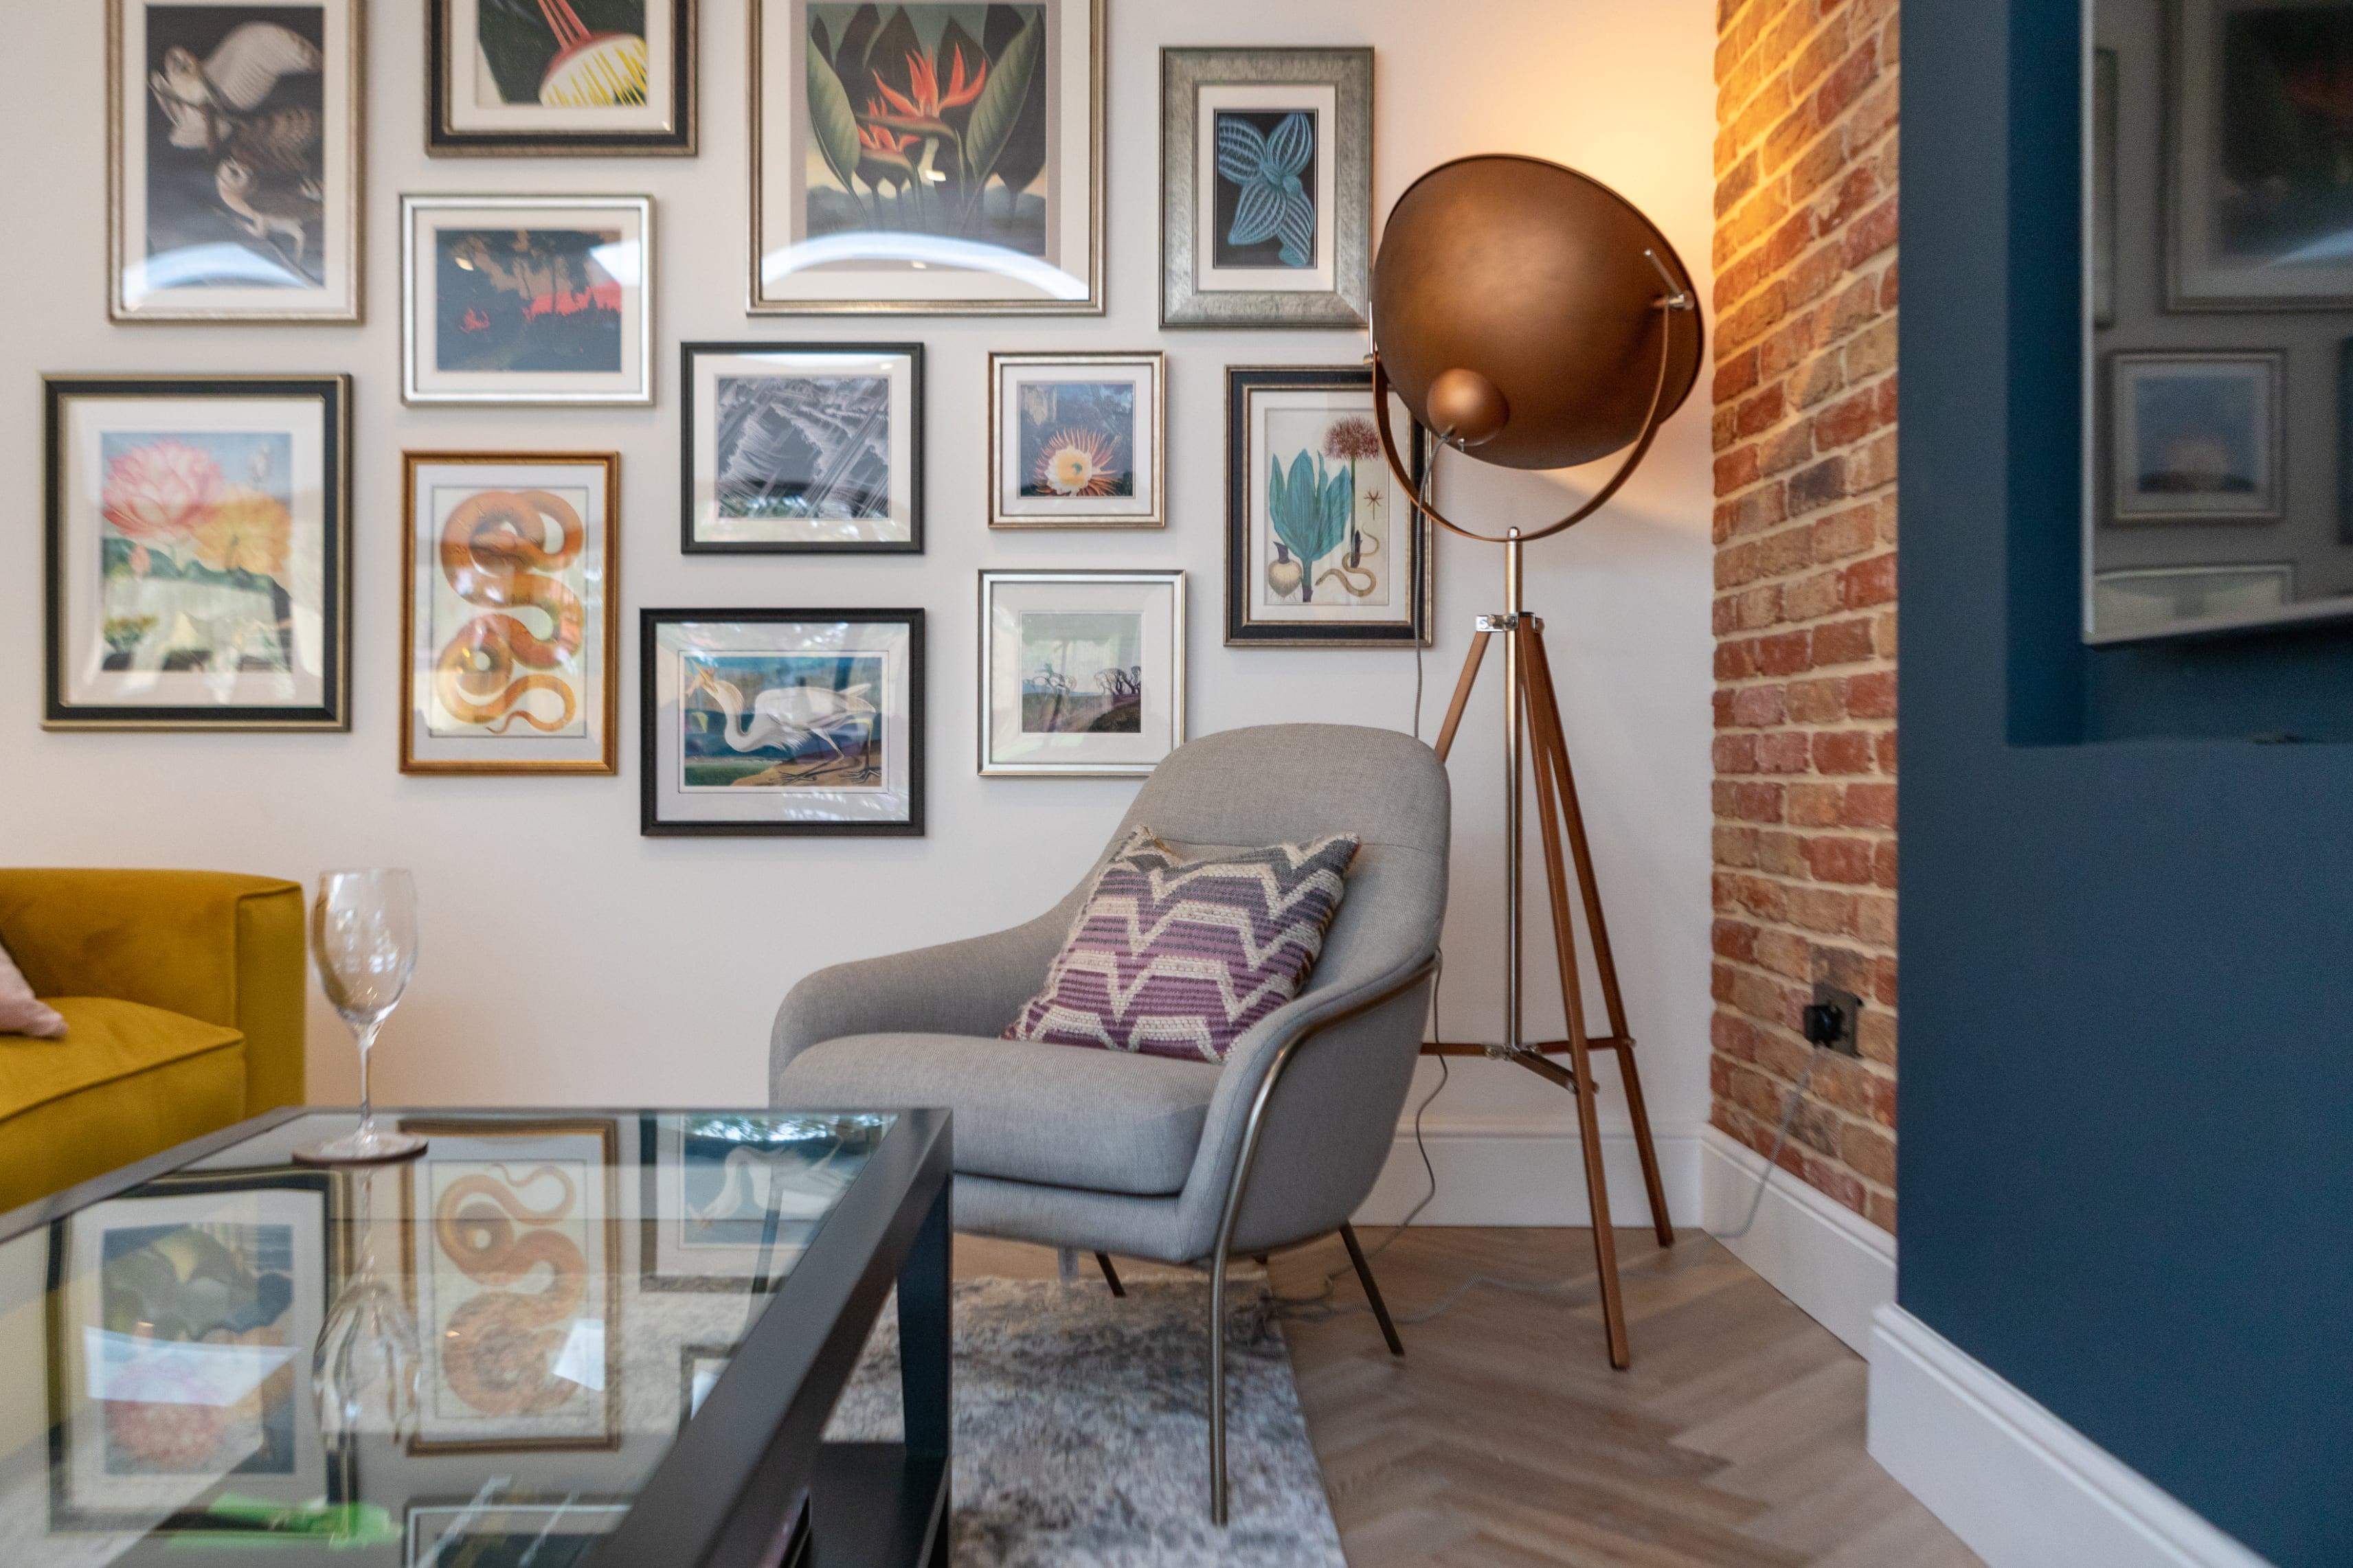 Eclectic seating area with yellow sofa and gallery wall